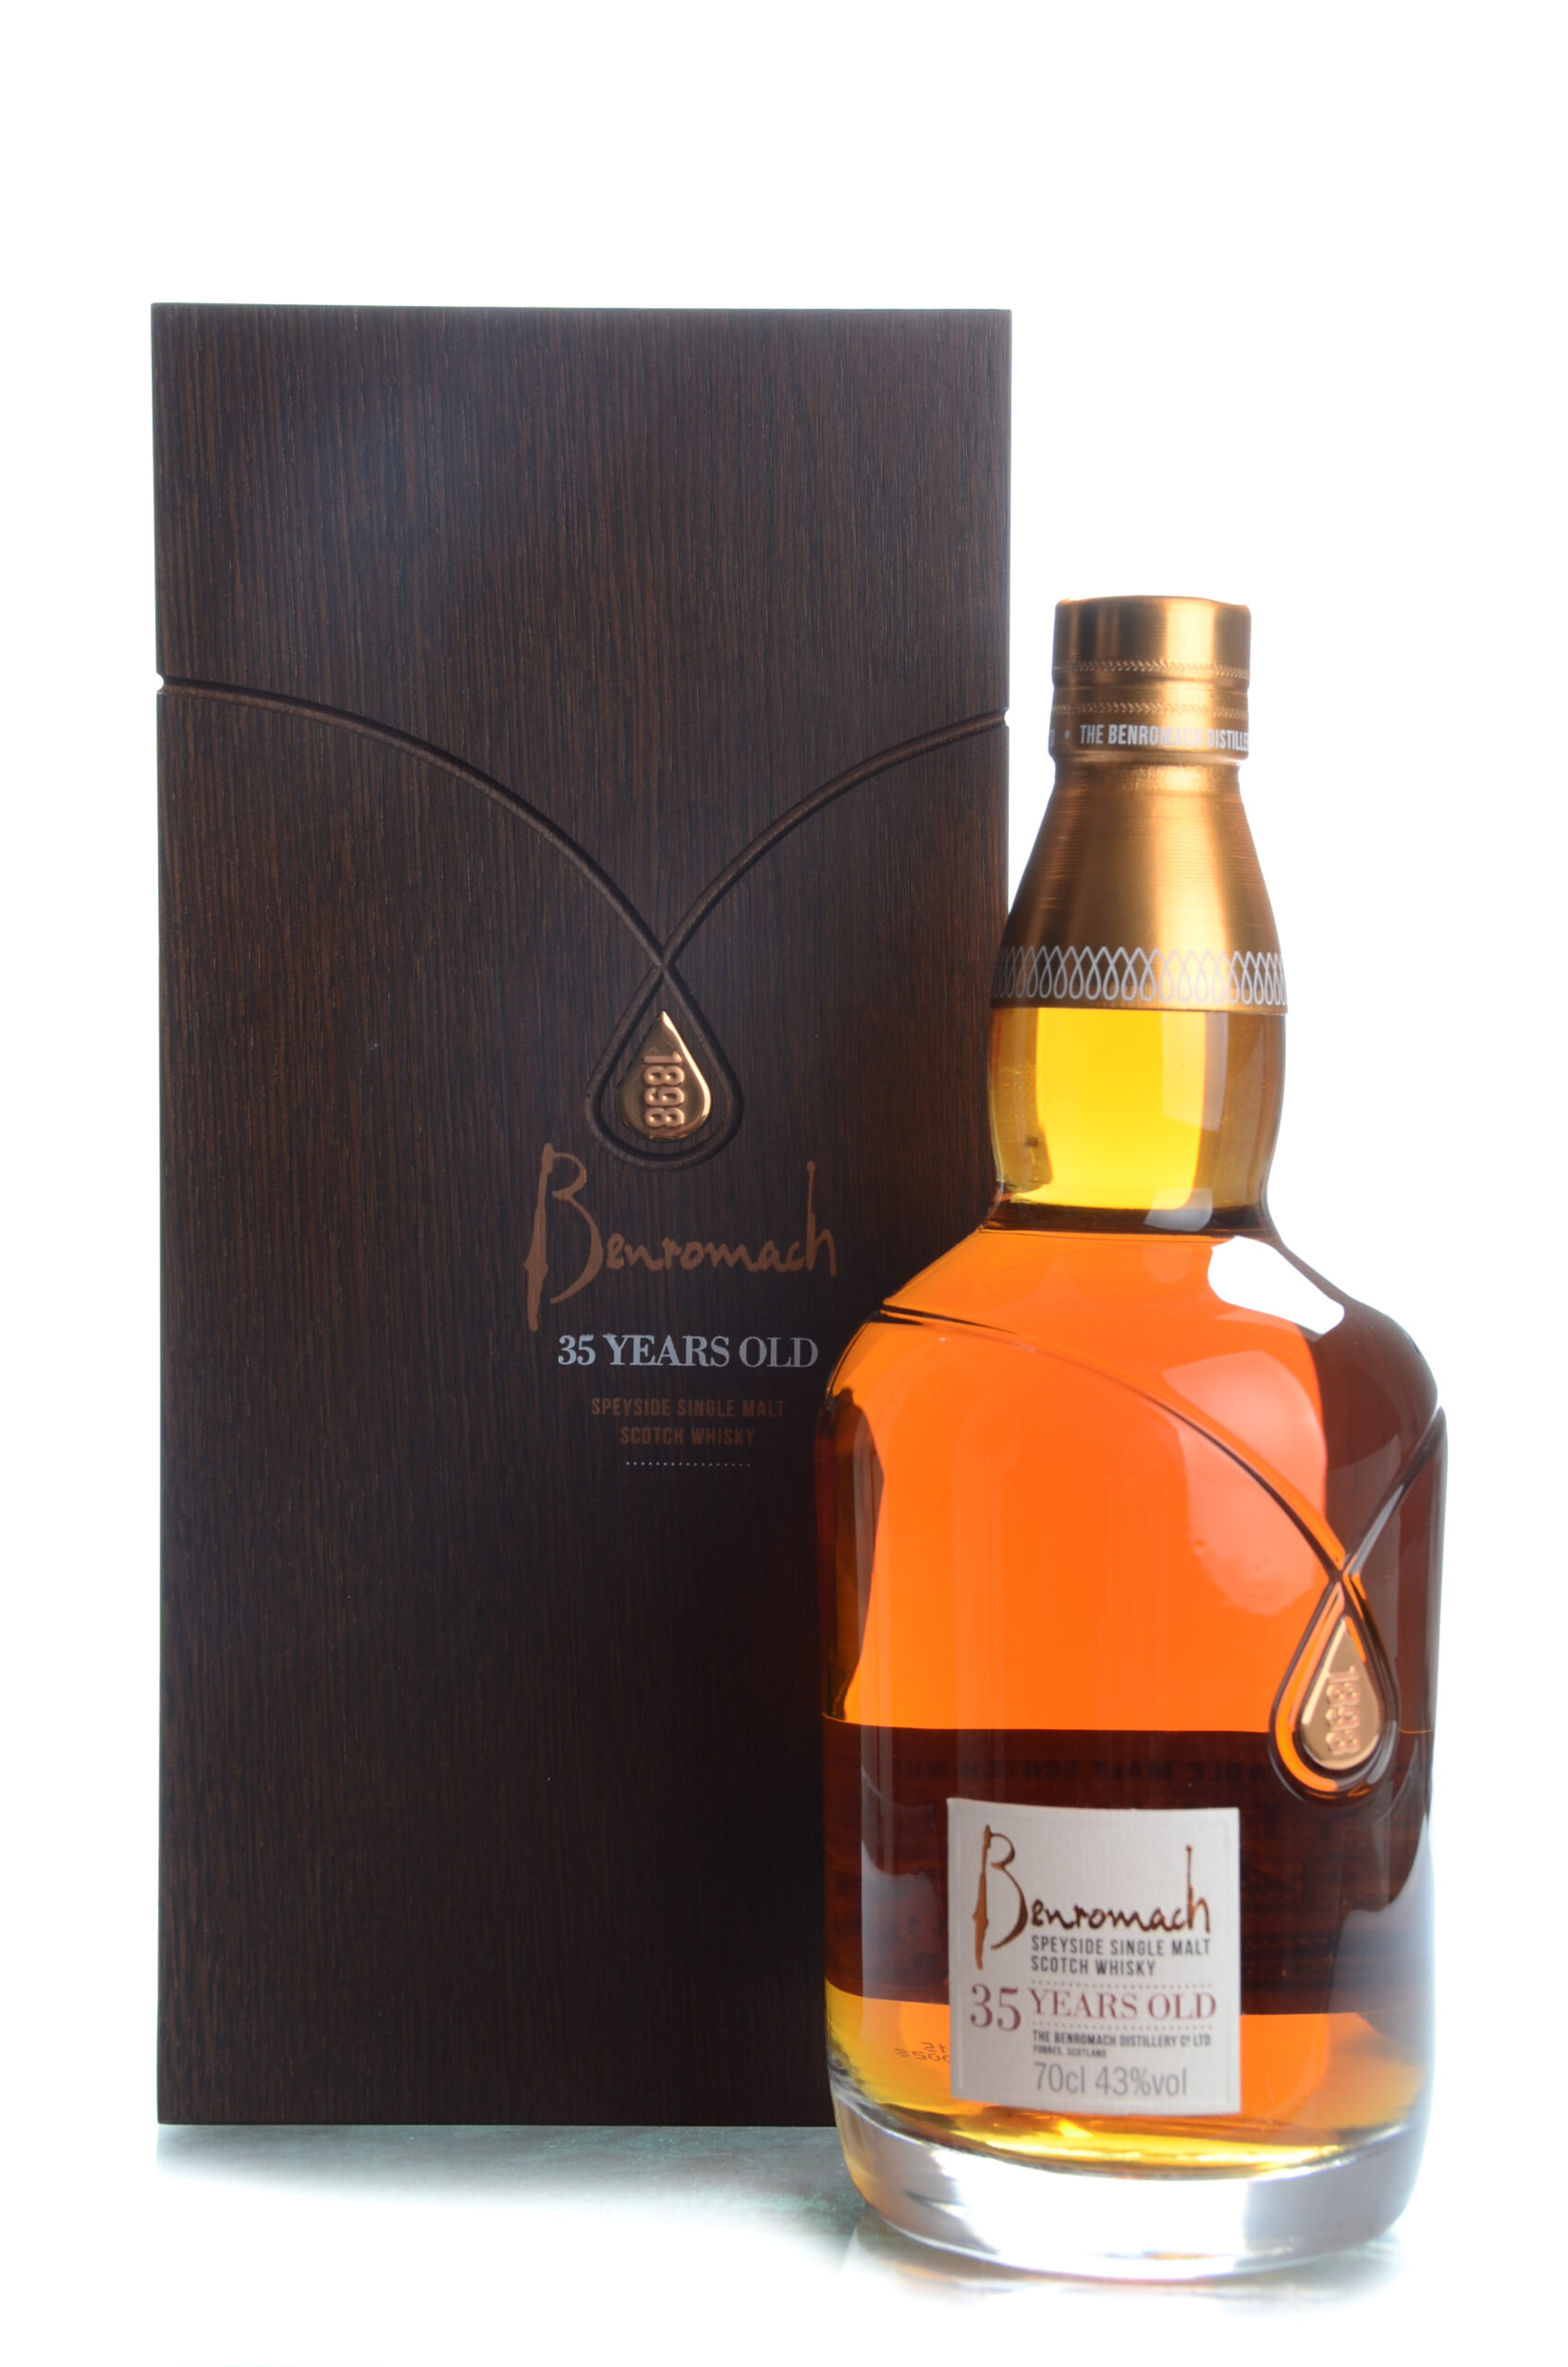 Benromach 35 years